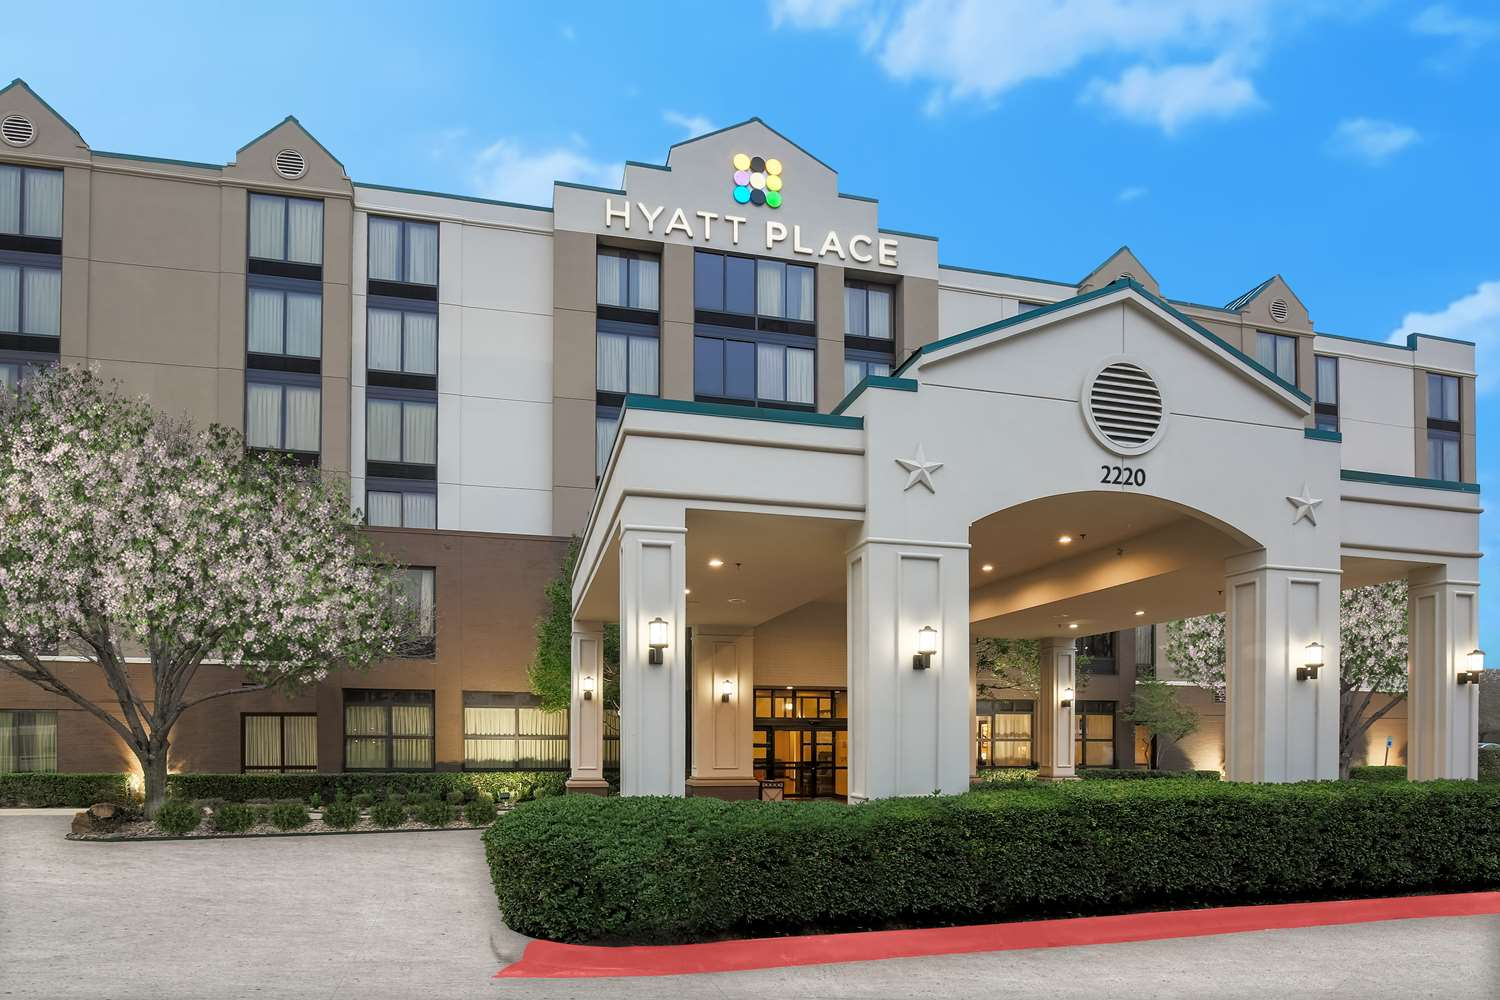 Hyatt Place Hotel Grapevine